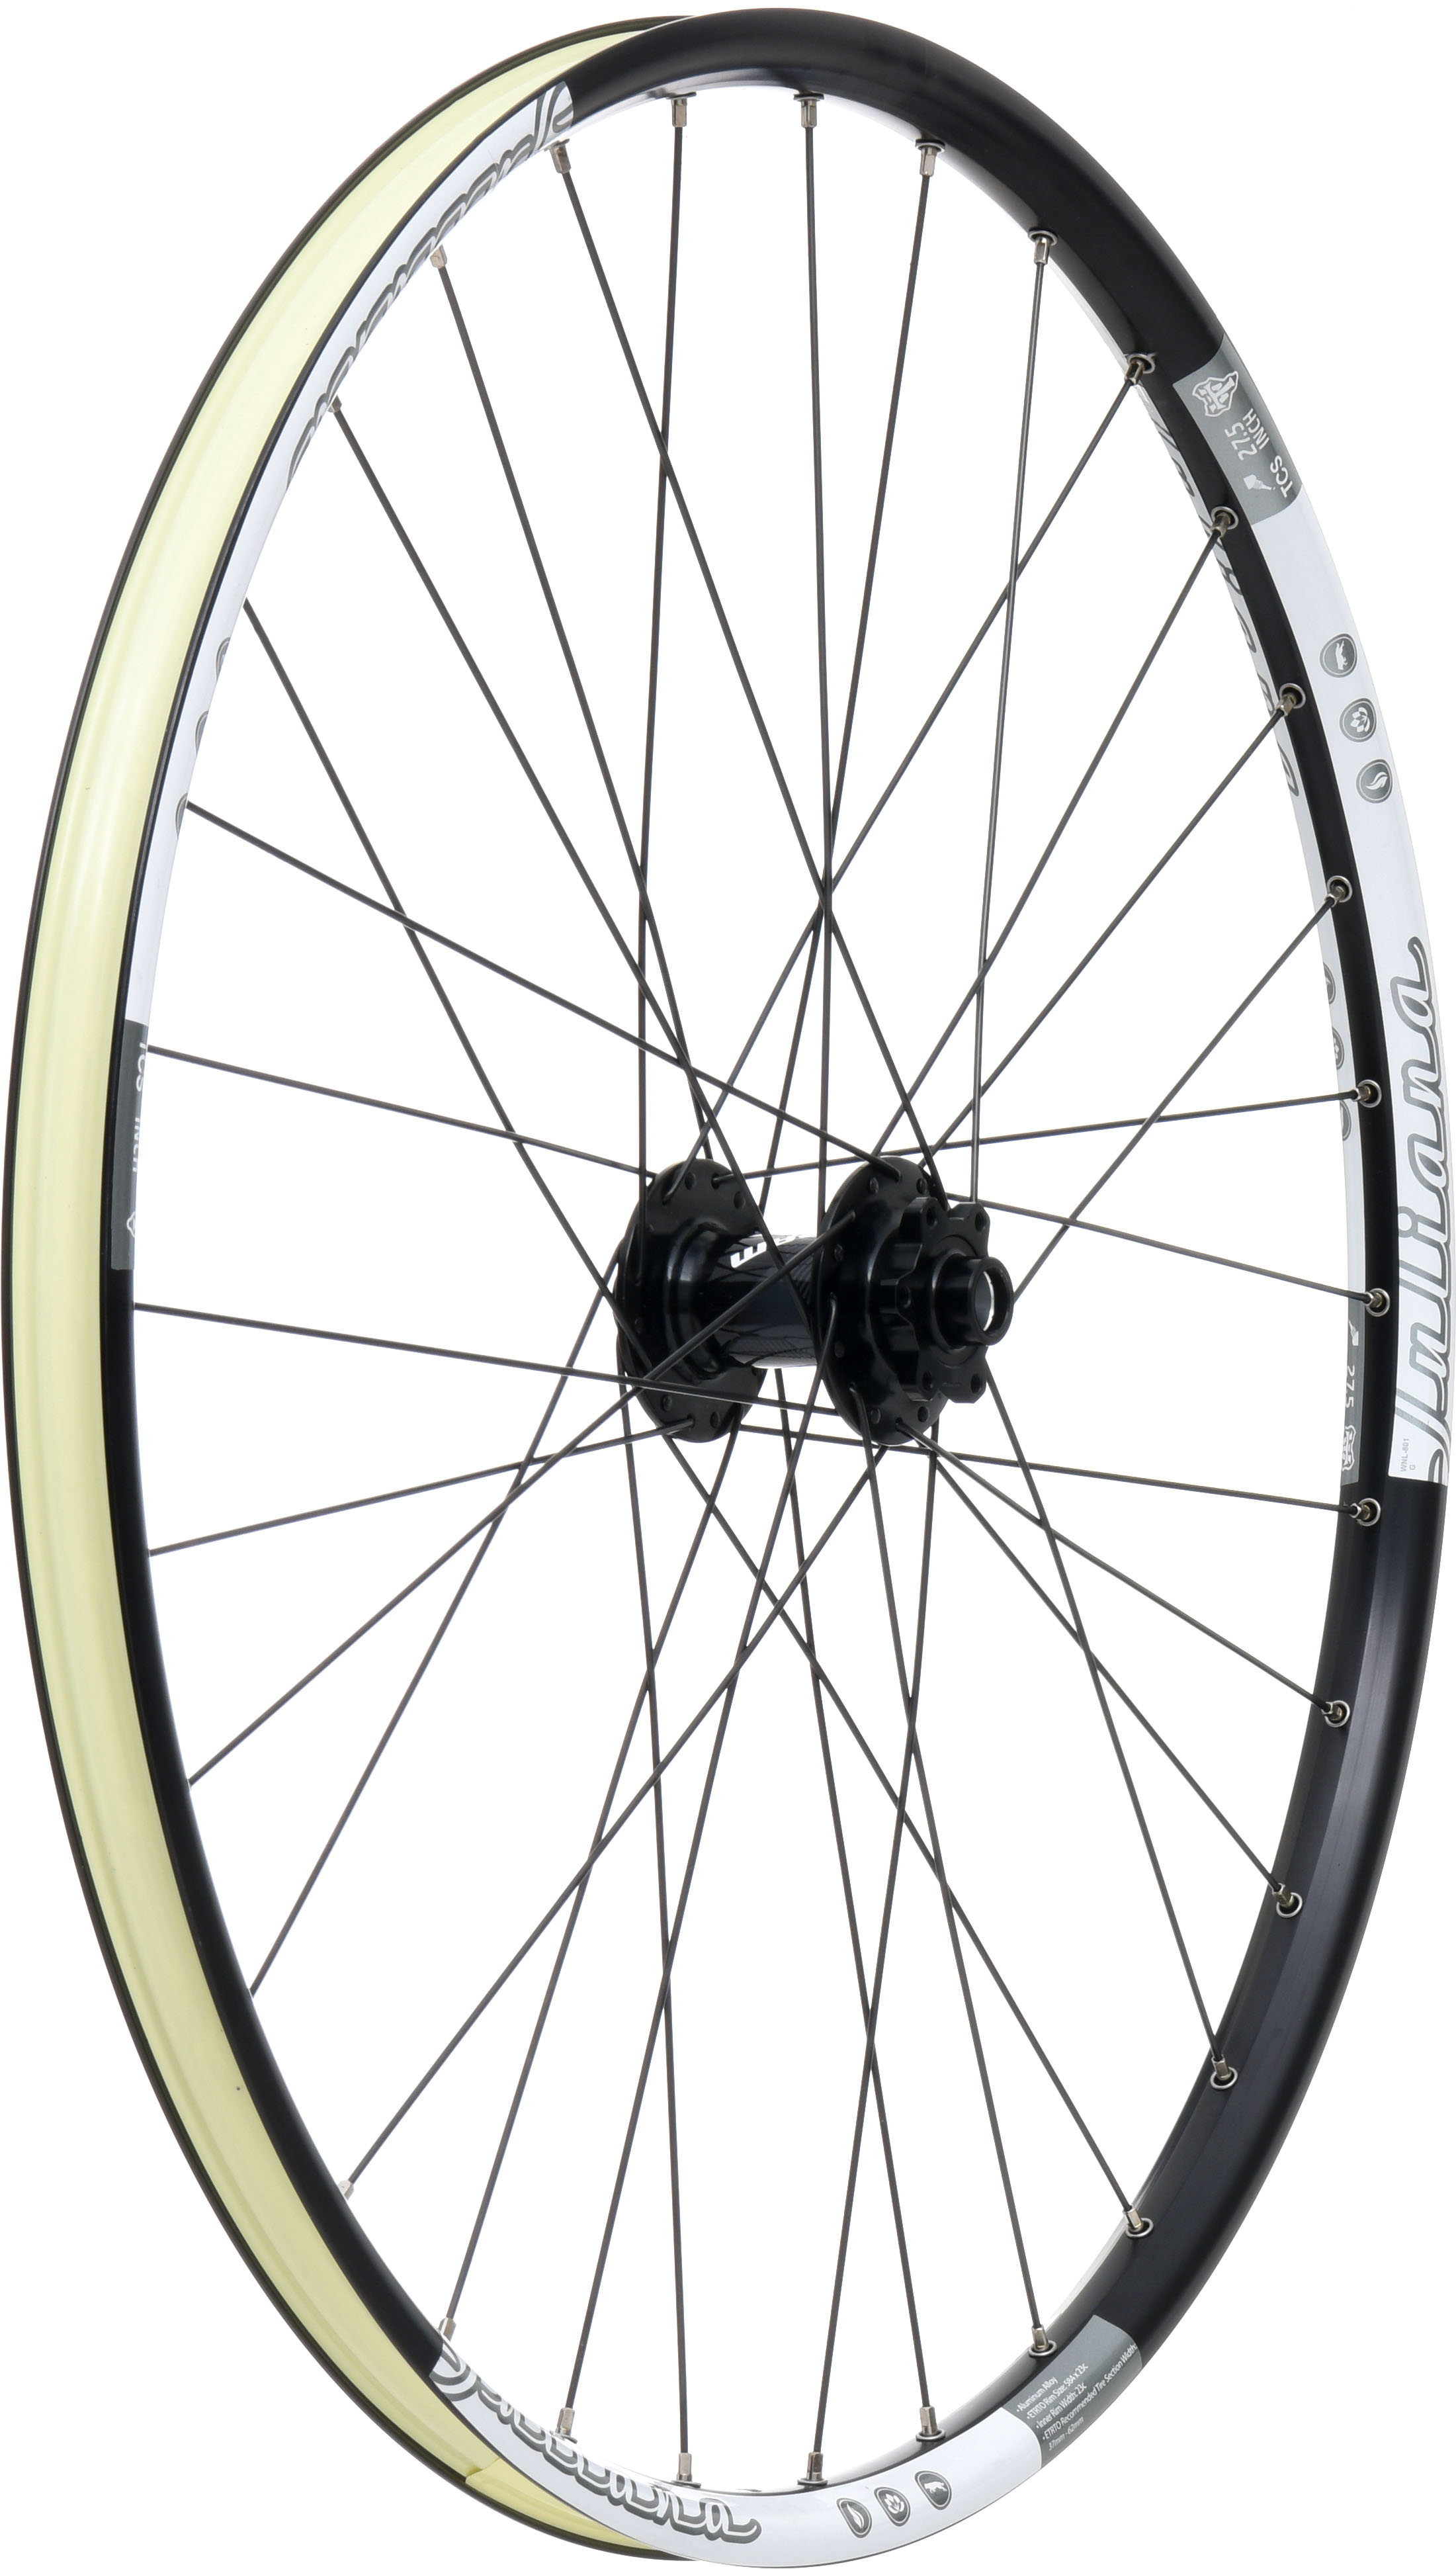 SRAM MTH 716 on WTB i23-D/R Front Wheel | Front wheel